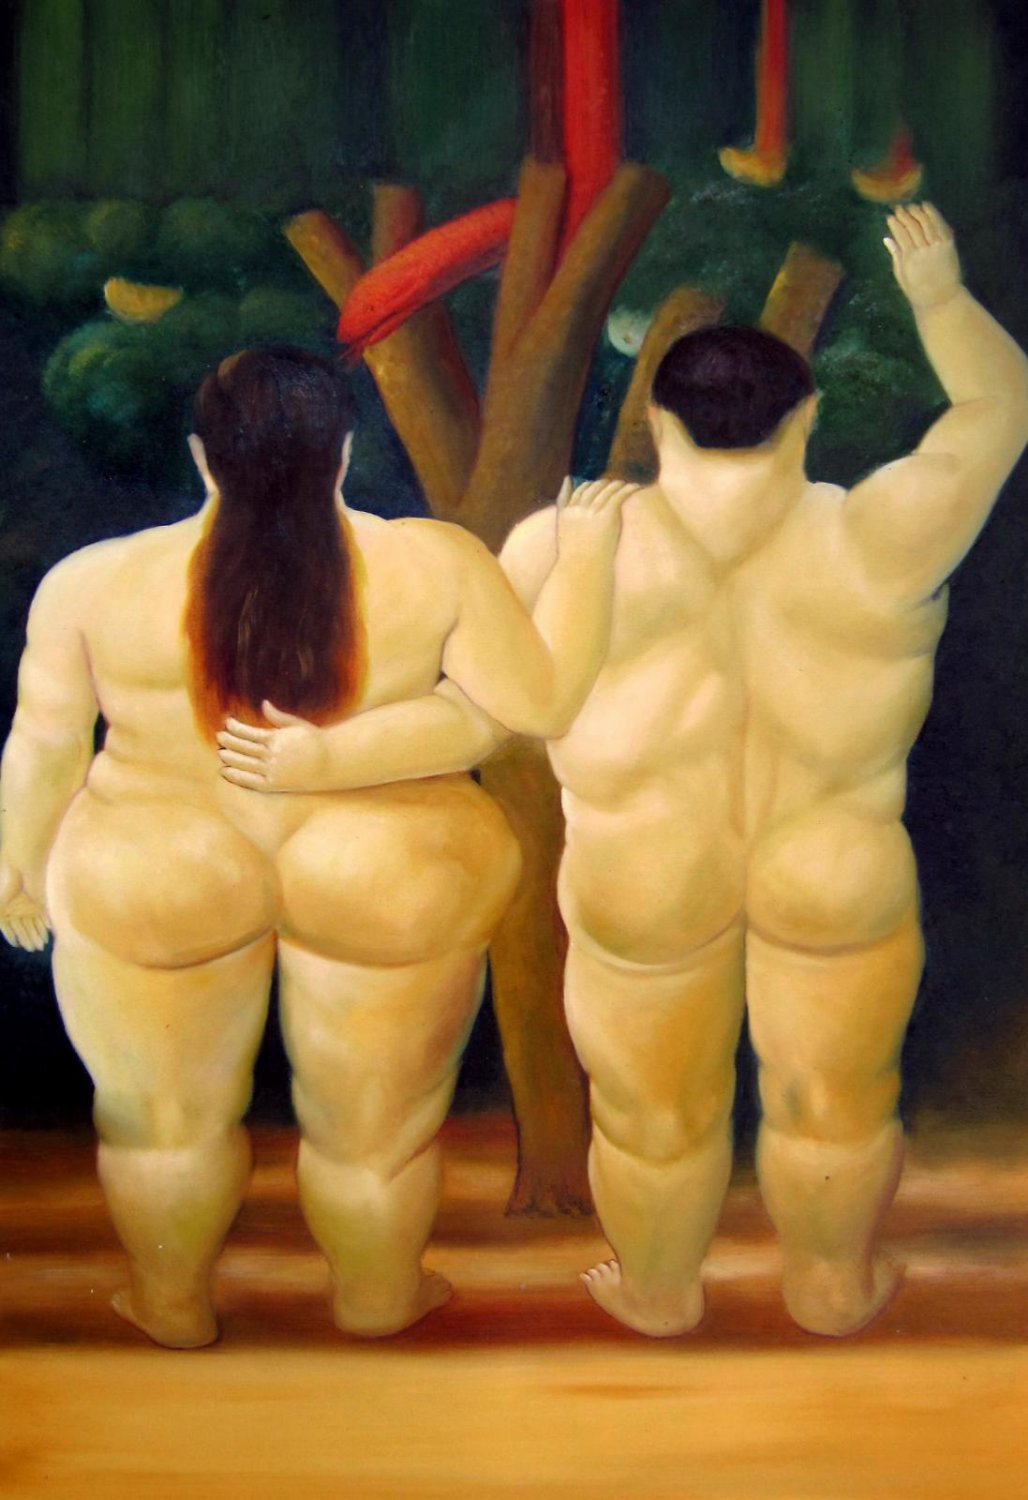 Rep. Fernando Botero 24x36 in. stretched Oil Painting Canvas Art Wall Decor modern32D